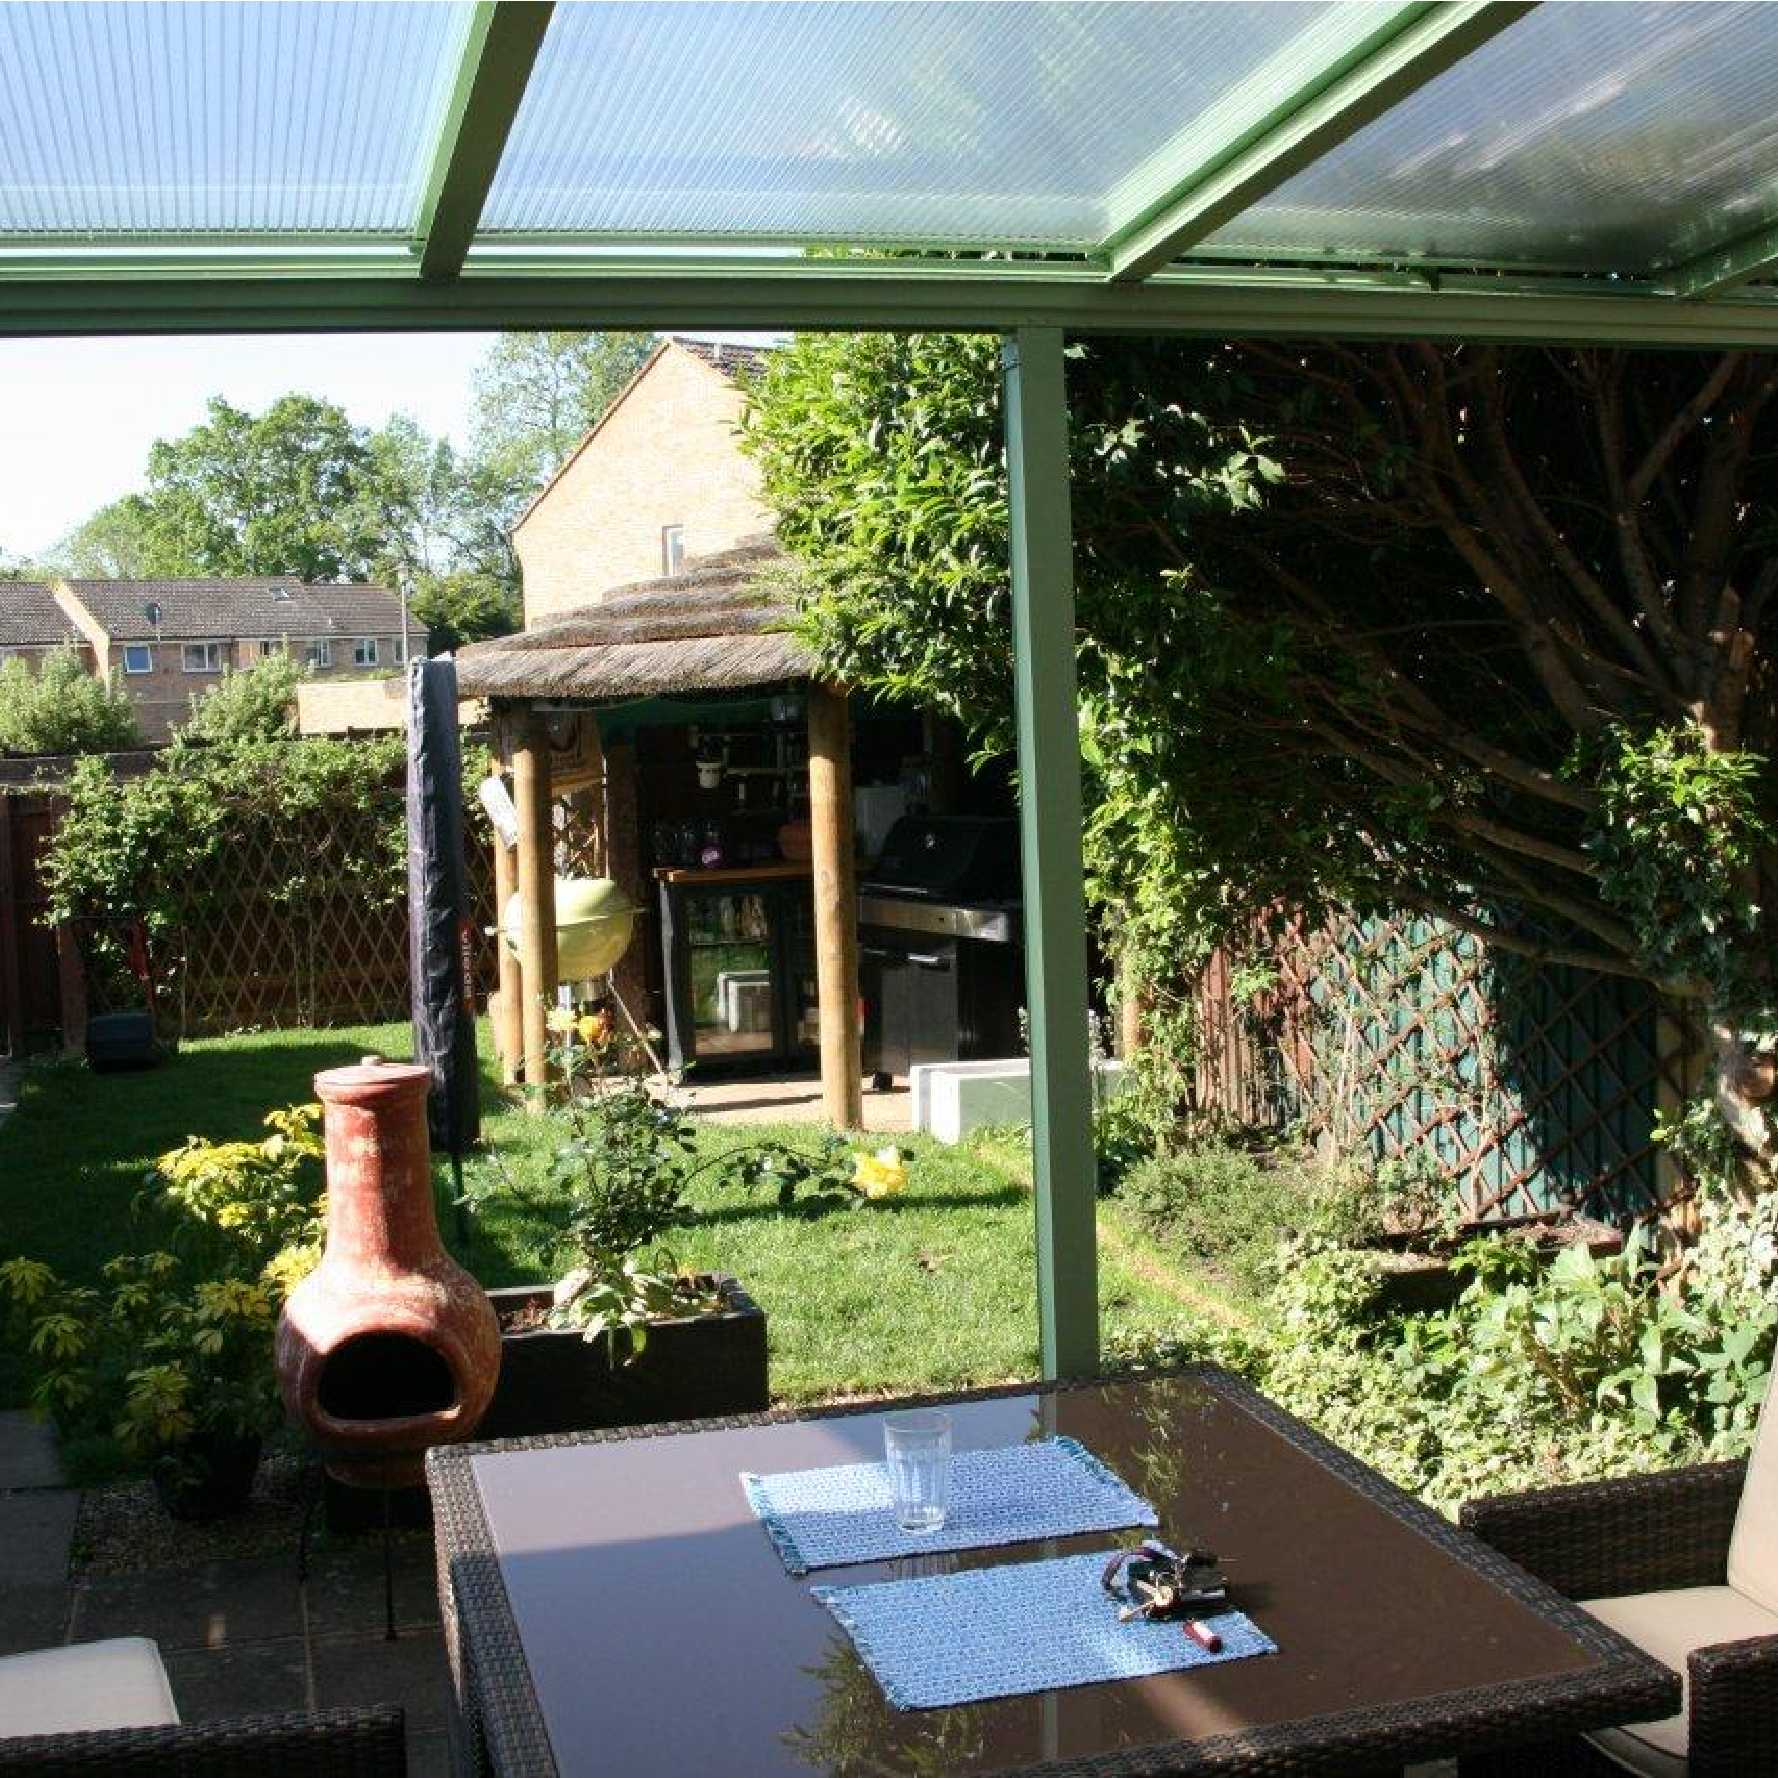 Affordable Omega Smart Lean-To Canopy with 16mm Polycarbonate Glazing - 3.1m (W) x 3.0m (P), (2) Supporting Posts